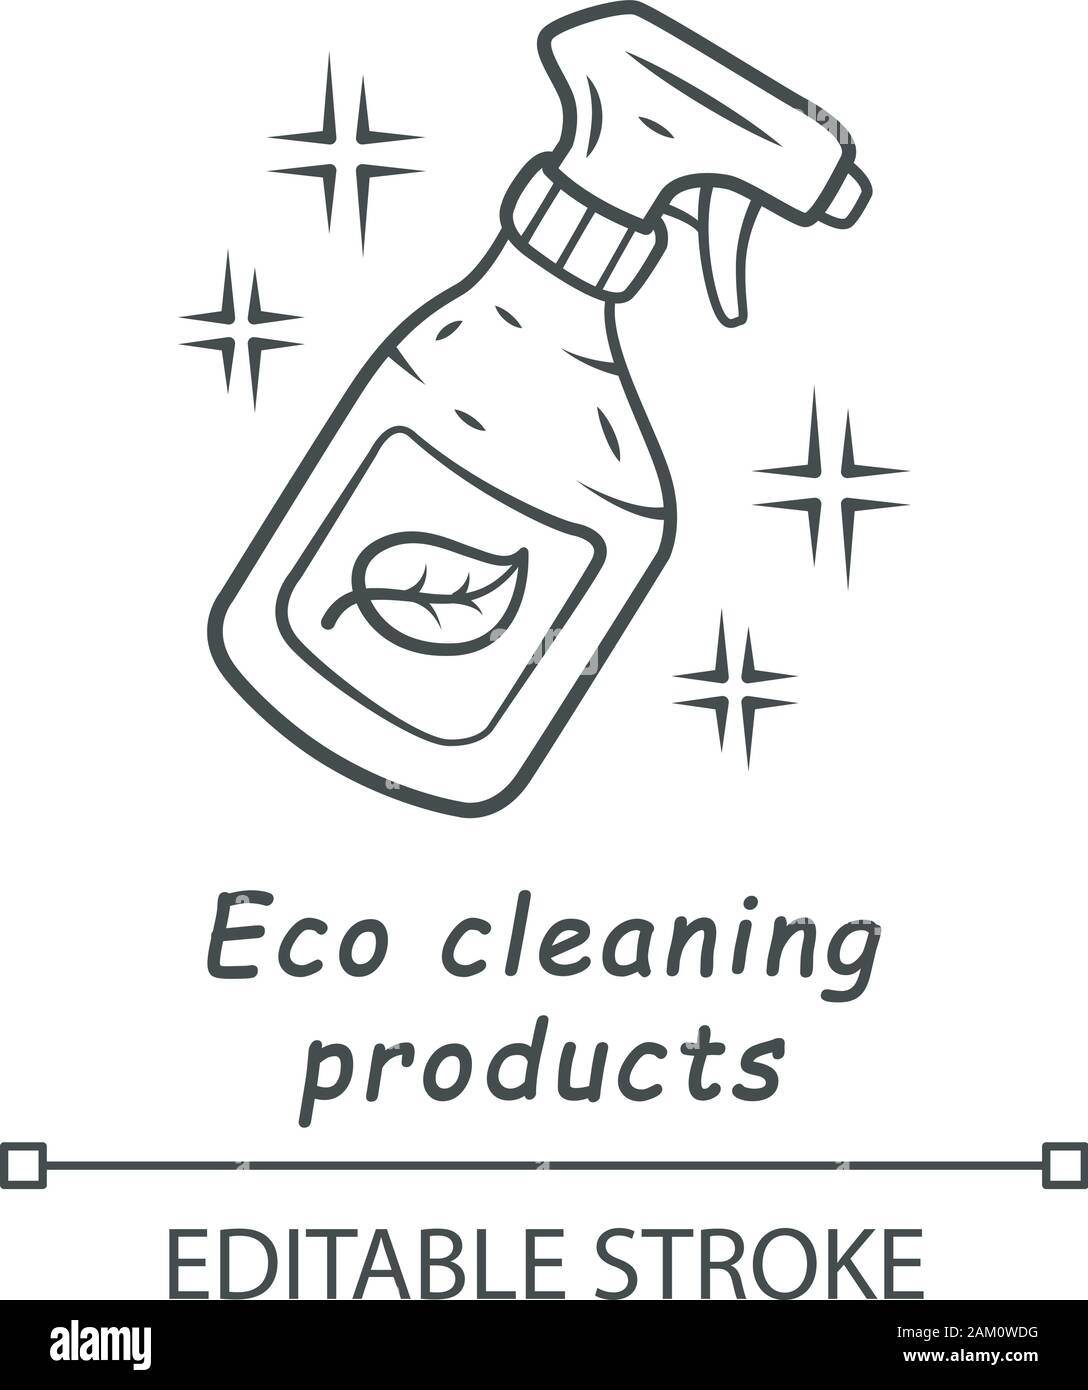 Eco cleaning products linear icon. Chemicals free spray bottle. Organic, eco friendly cleaning product. Thin line illustration. Contour symbol. Vector Stock Vector